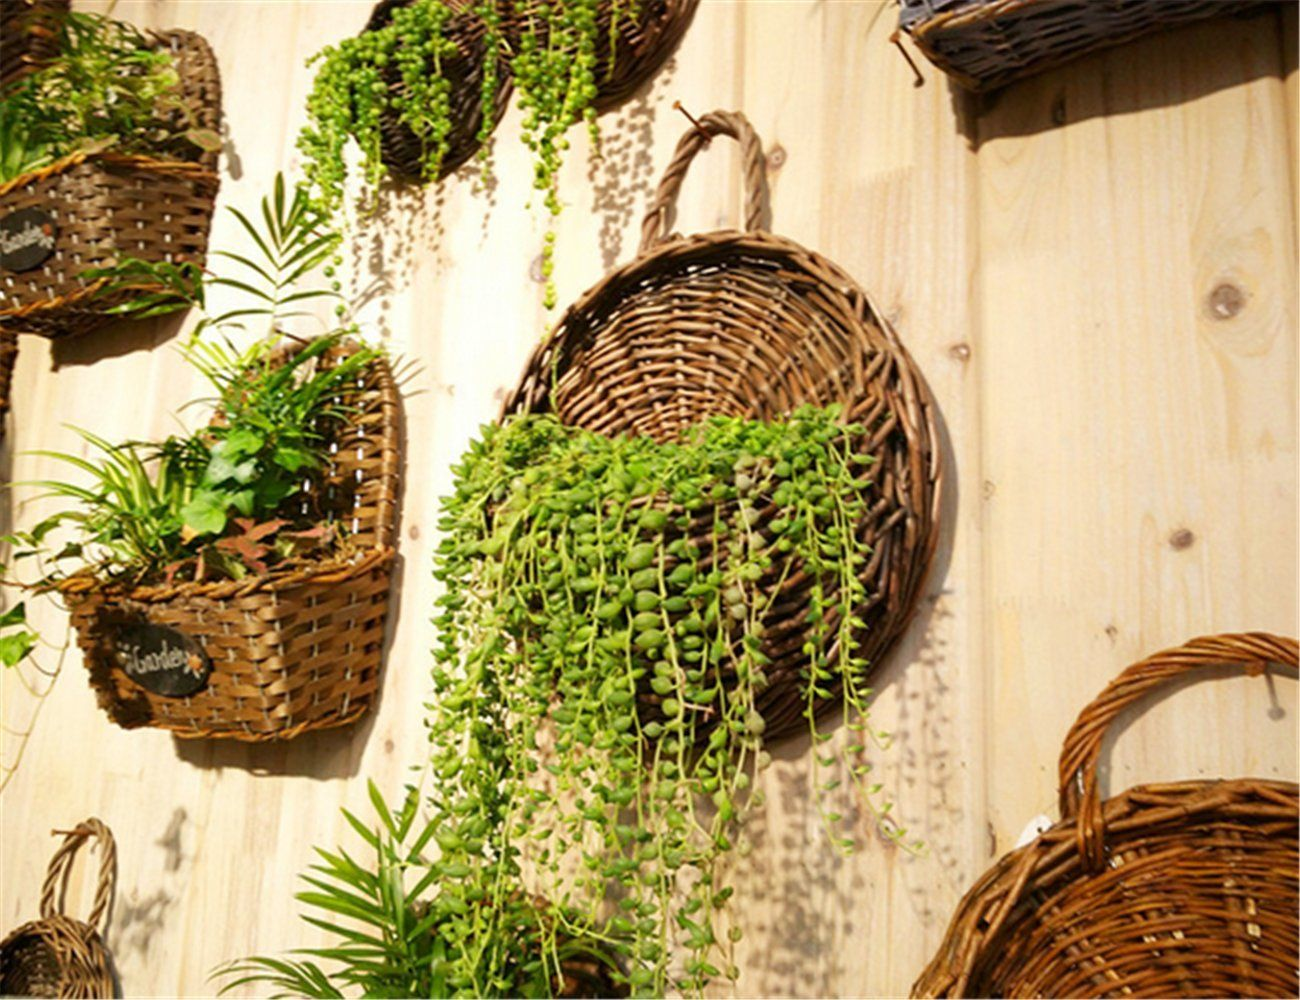 Amazon.com : Kingbuy Hand Made Decorative Willow woven baskets, wall ...